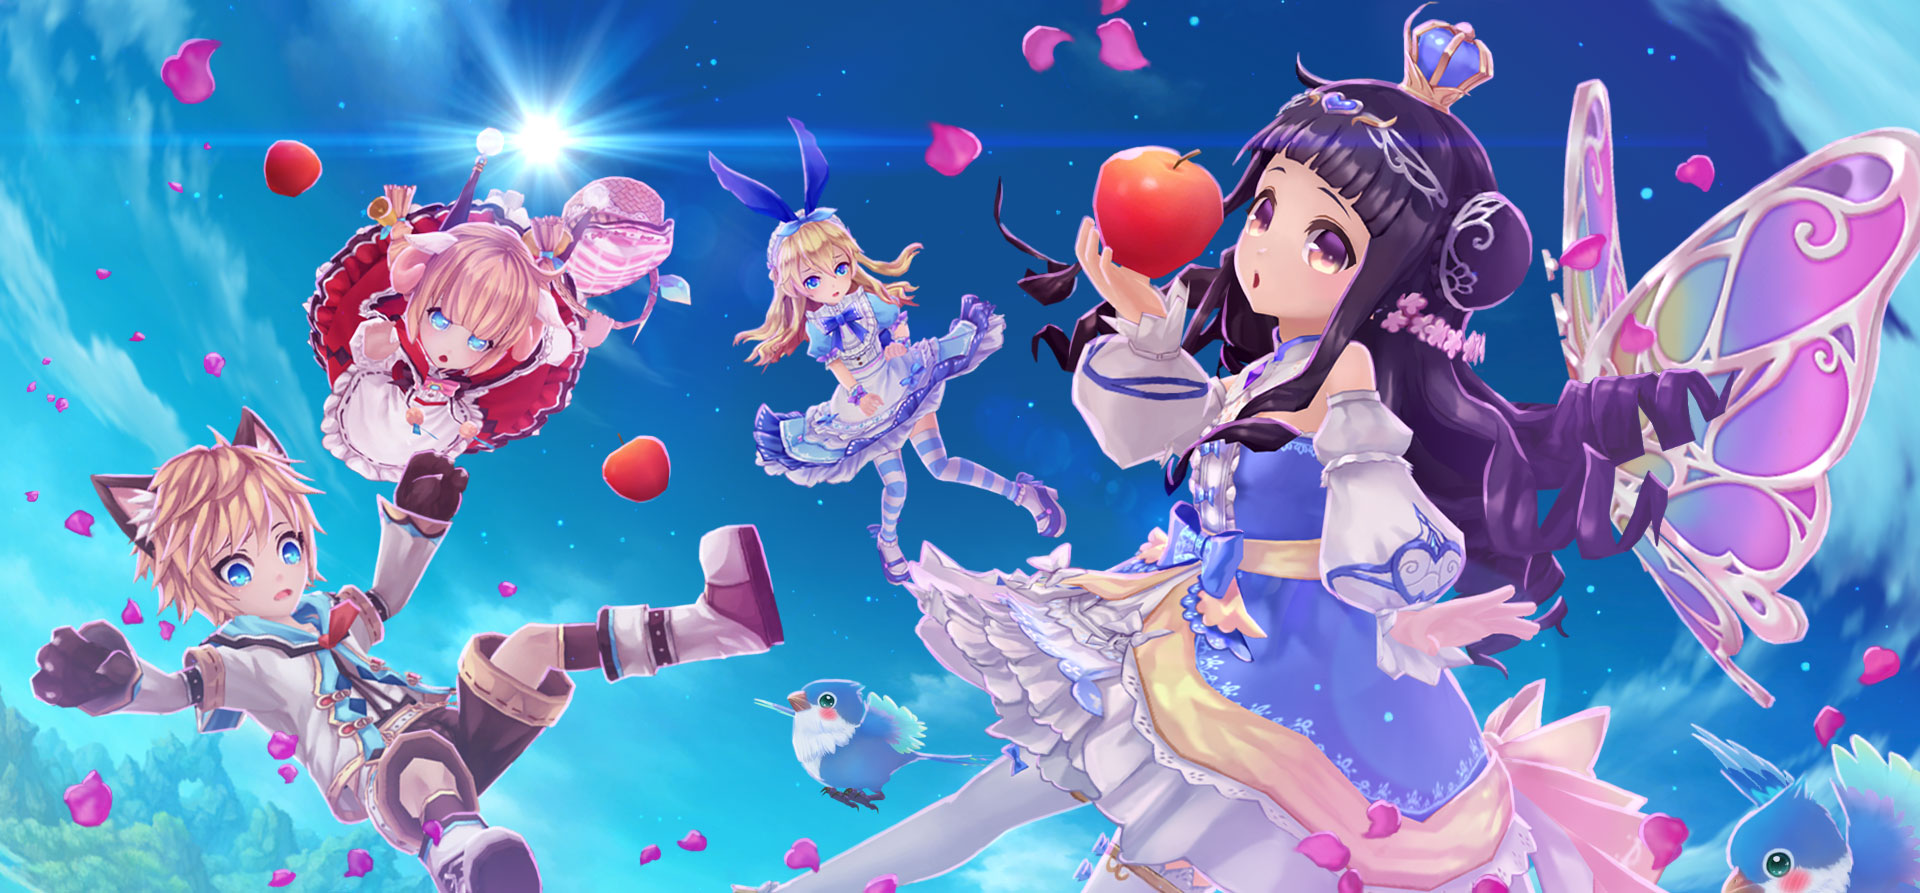 image - snow white wallpaper 2 | aura kingdom wiki | fandom